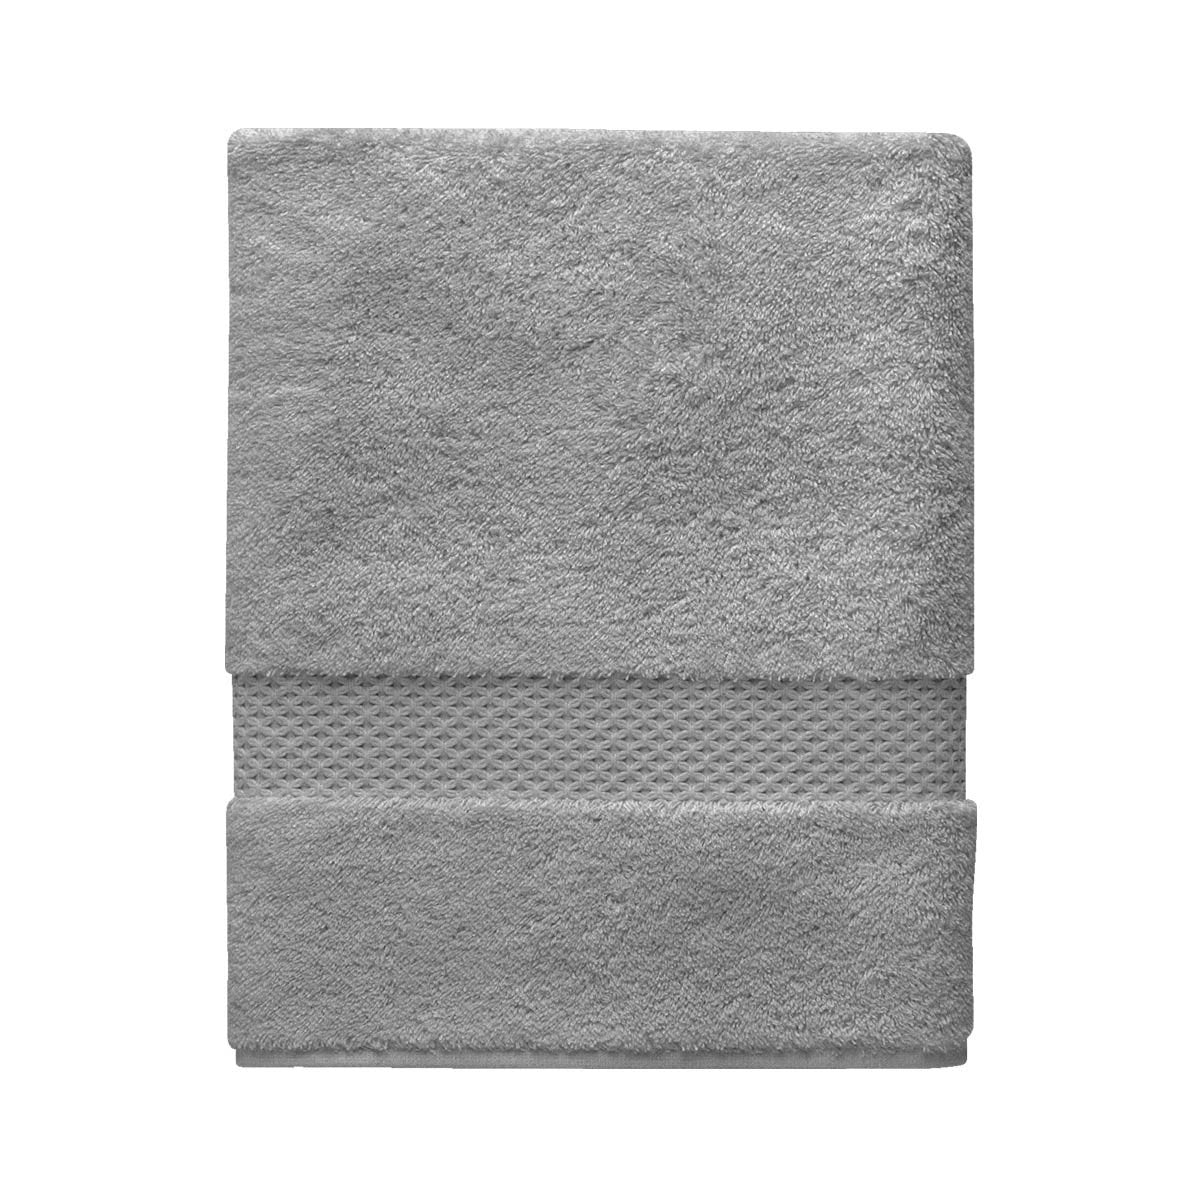 Etoile Platine Bath Collection by Yves Delorme | Fig Linens - Gray bath linen, towel